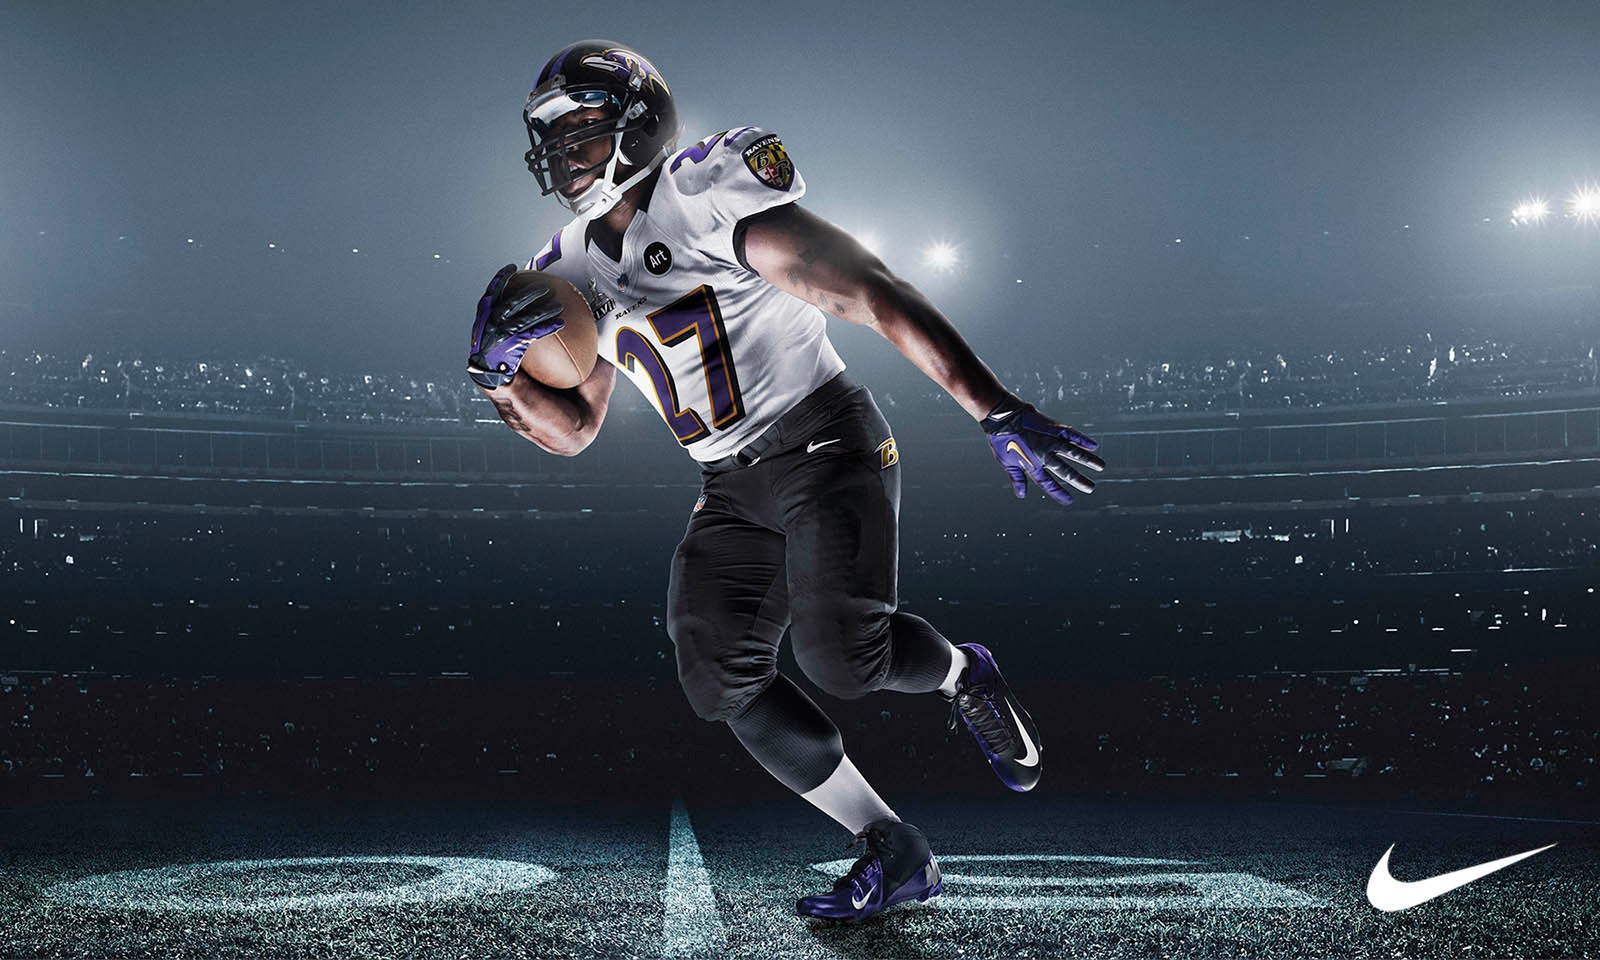 NFL HD Wallpapers 1600x960